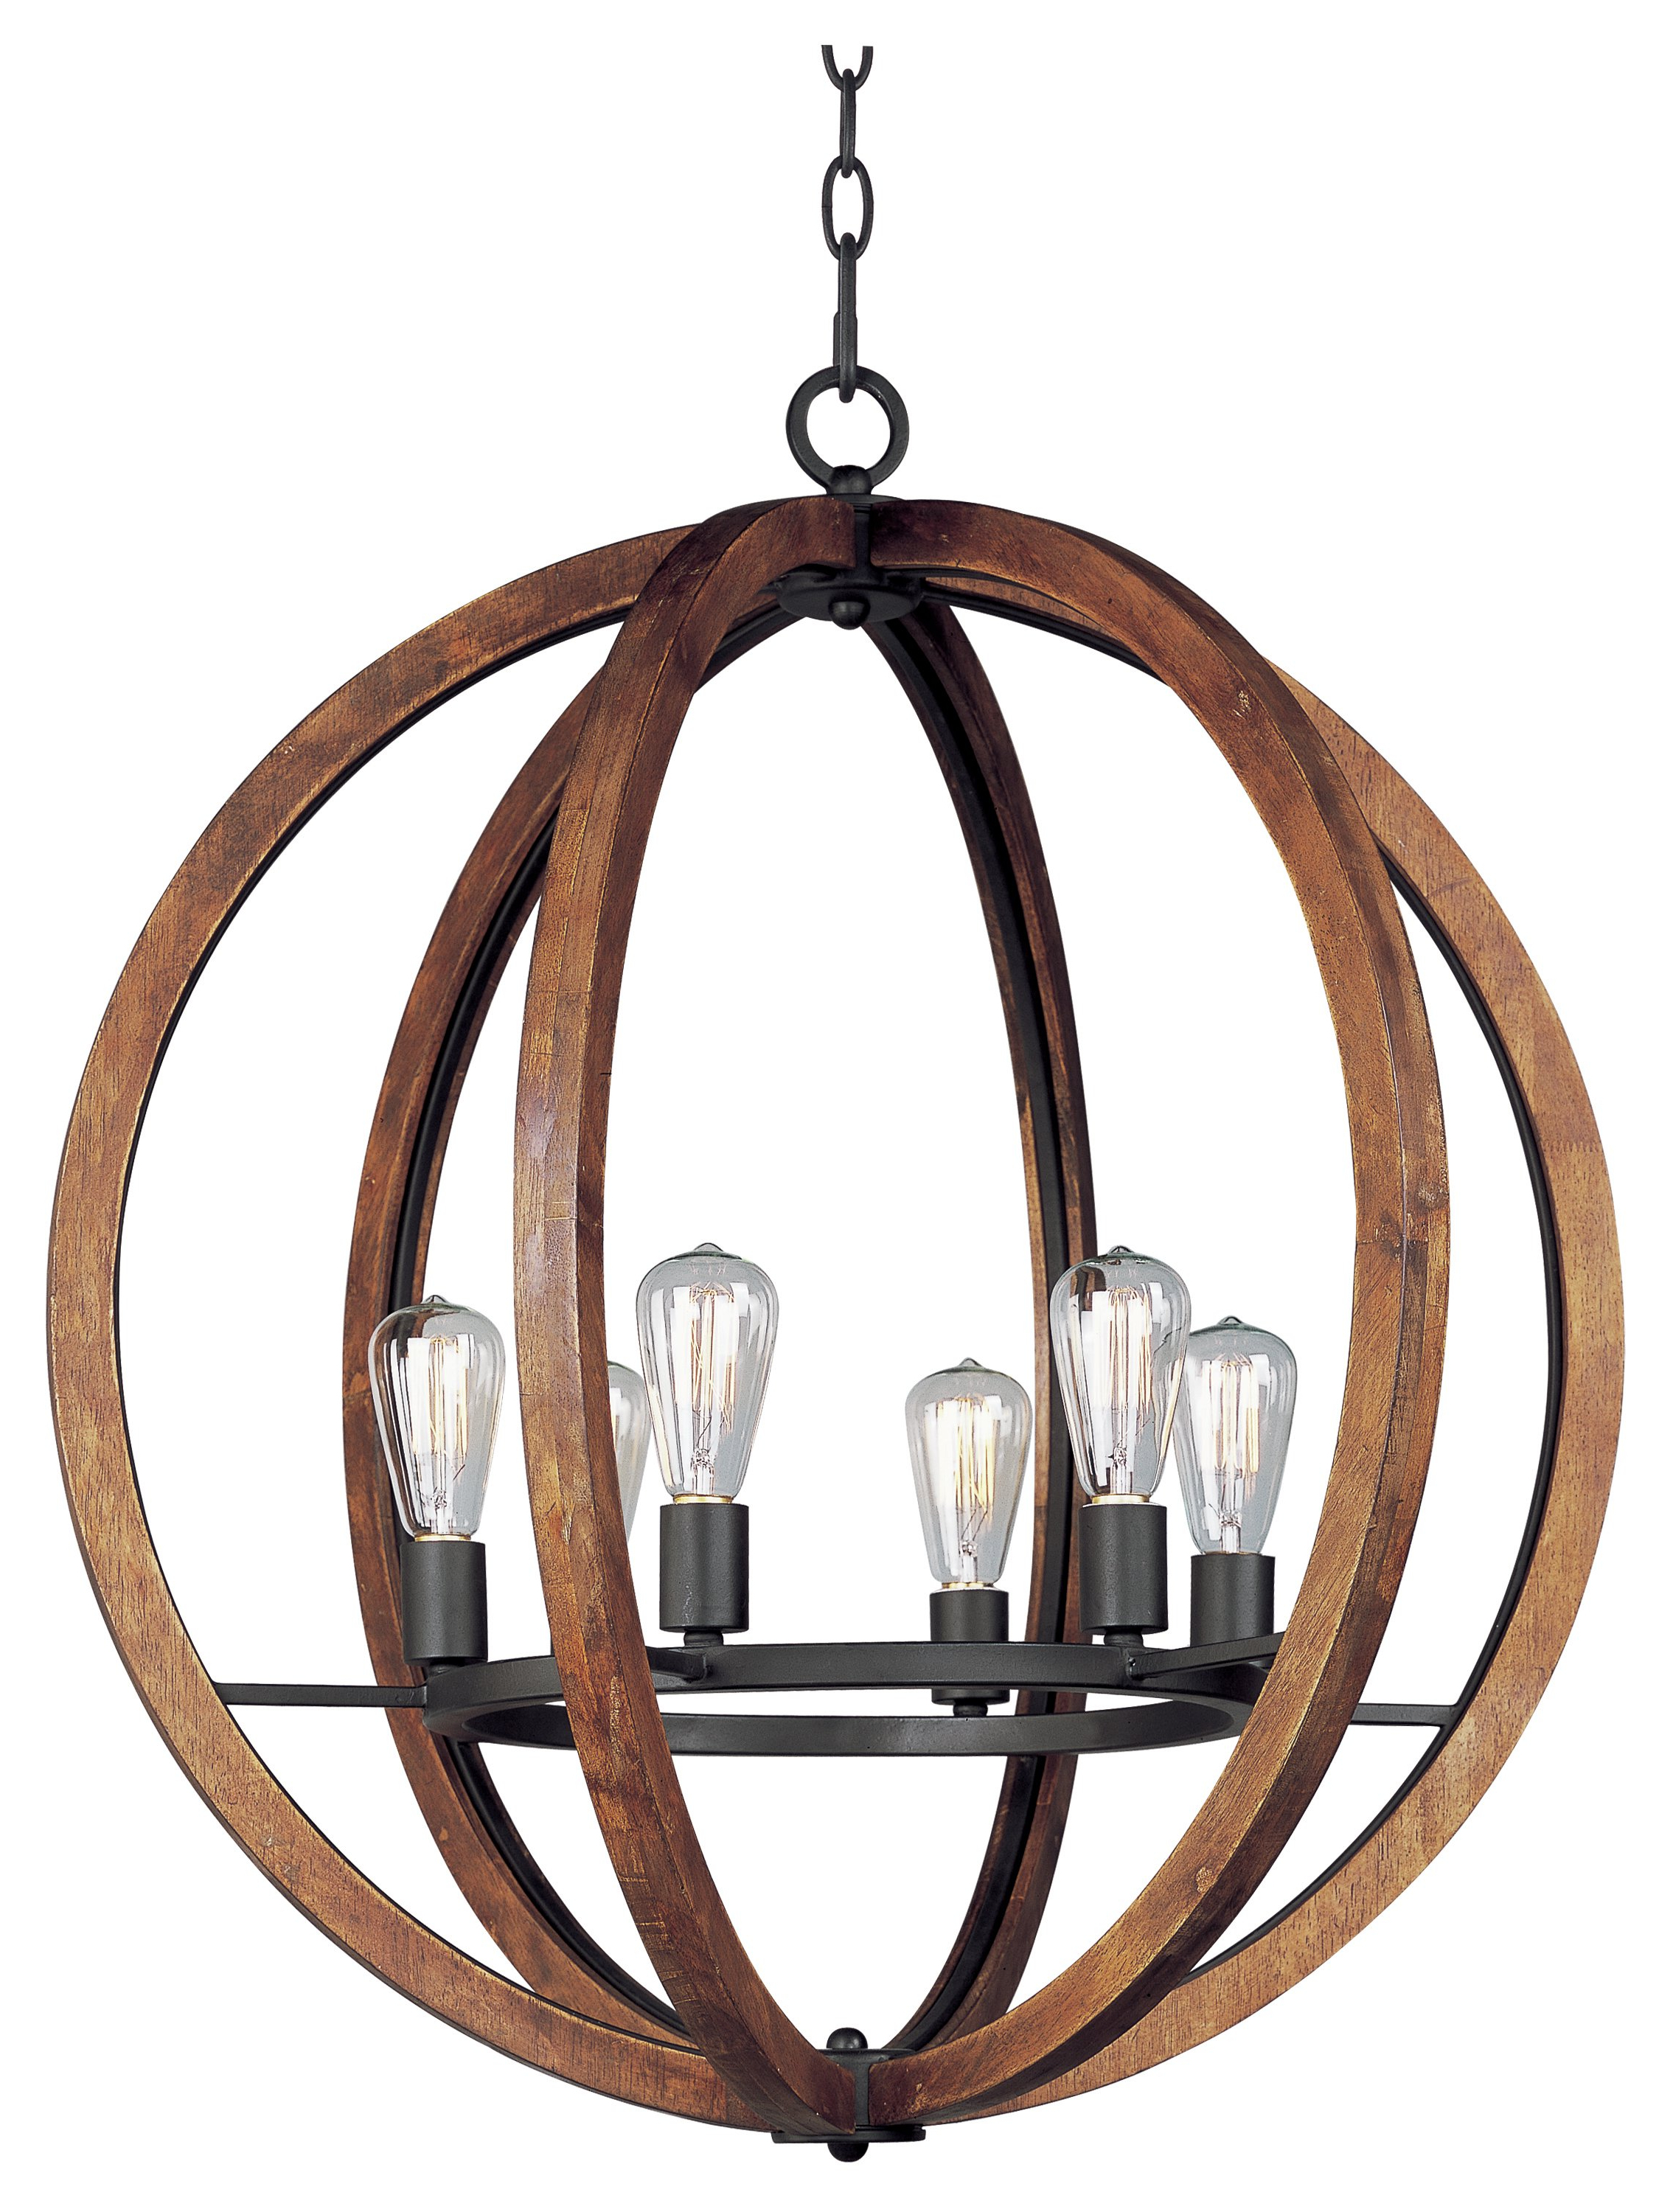 Orly 6 Light Globe Chandelier Throughout Trendy Joon 6 Light Globe Chandeliers (View 5 of 20)